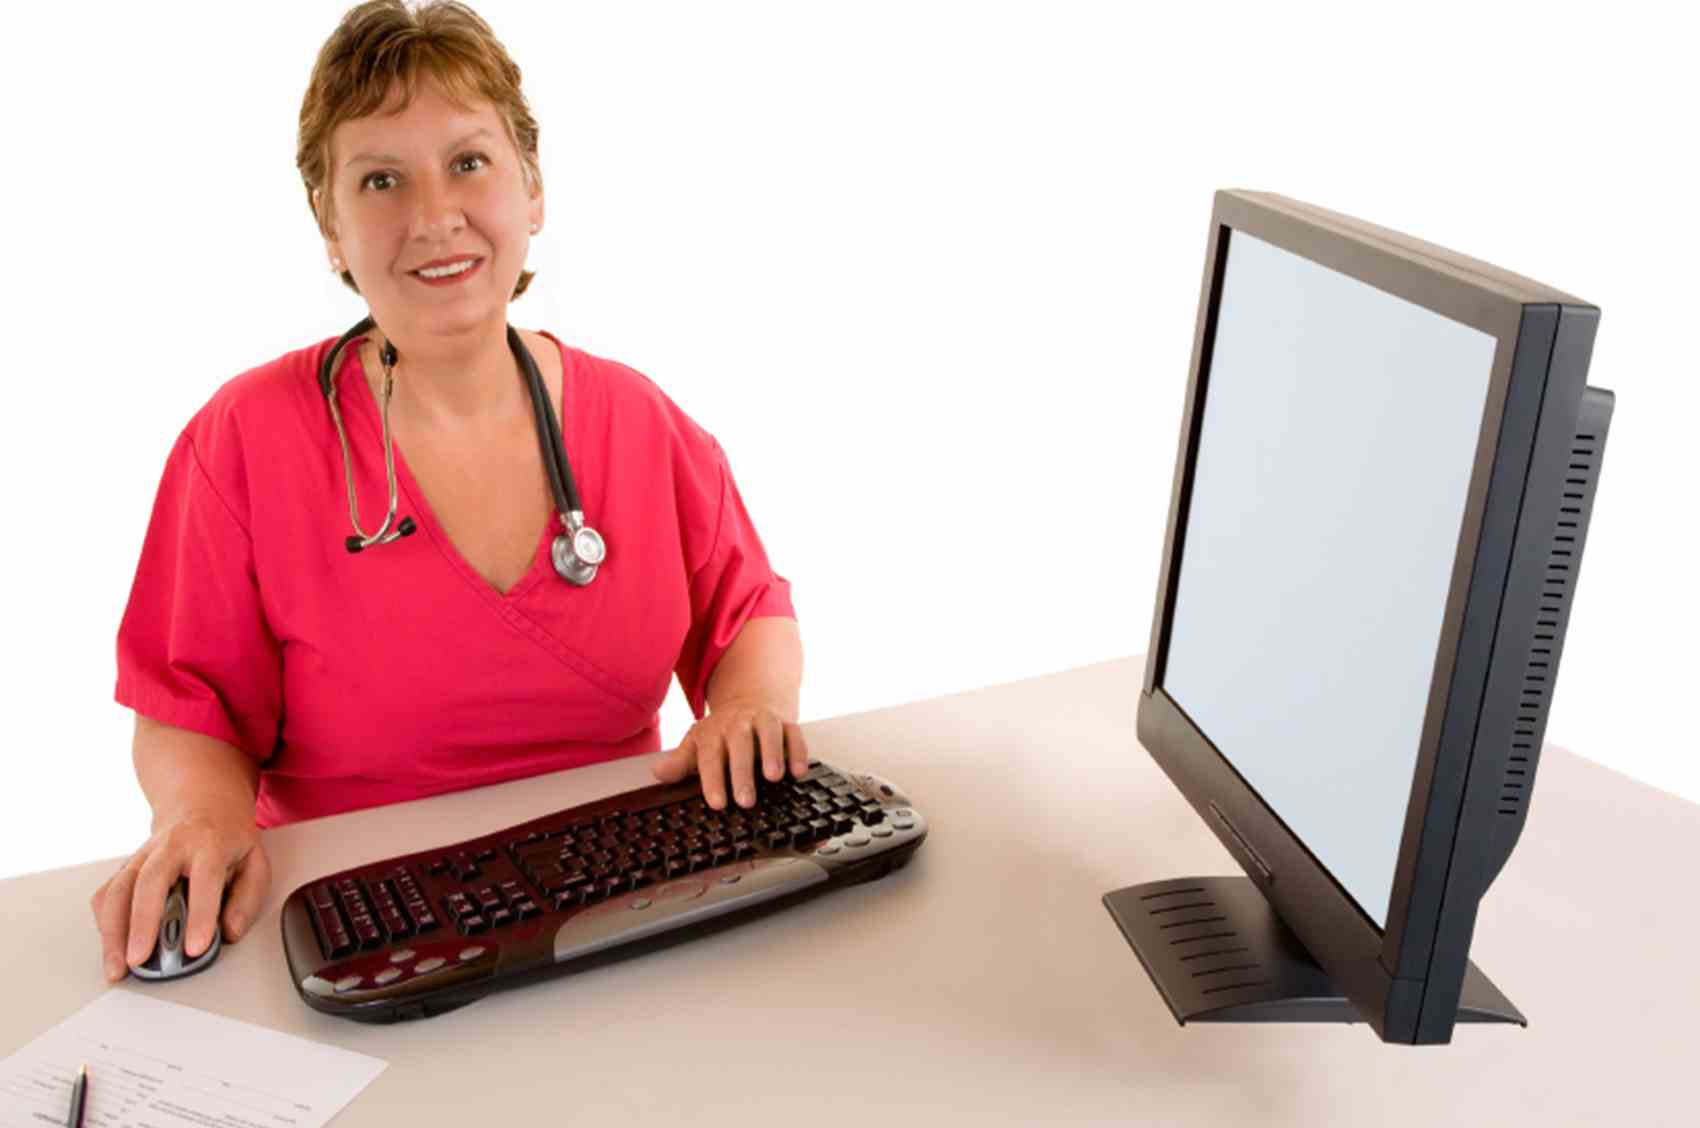 Nurse looking at camera over keyboard.jpg